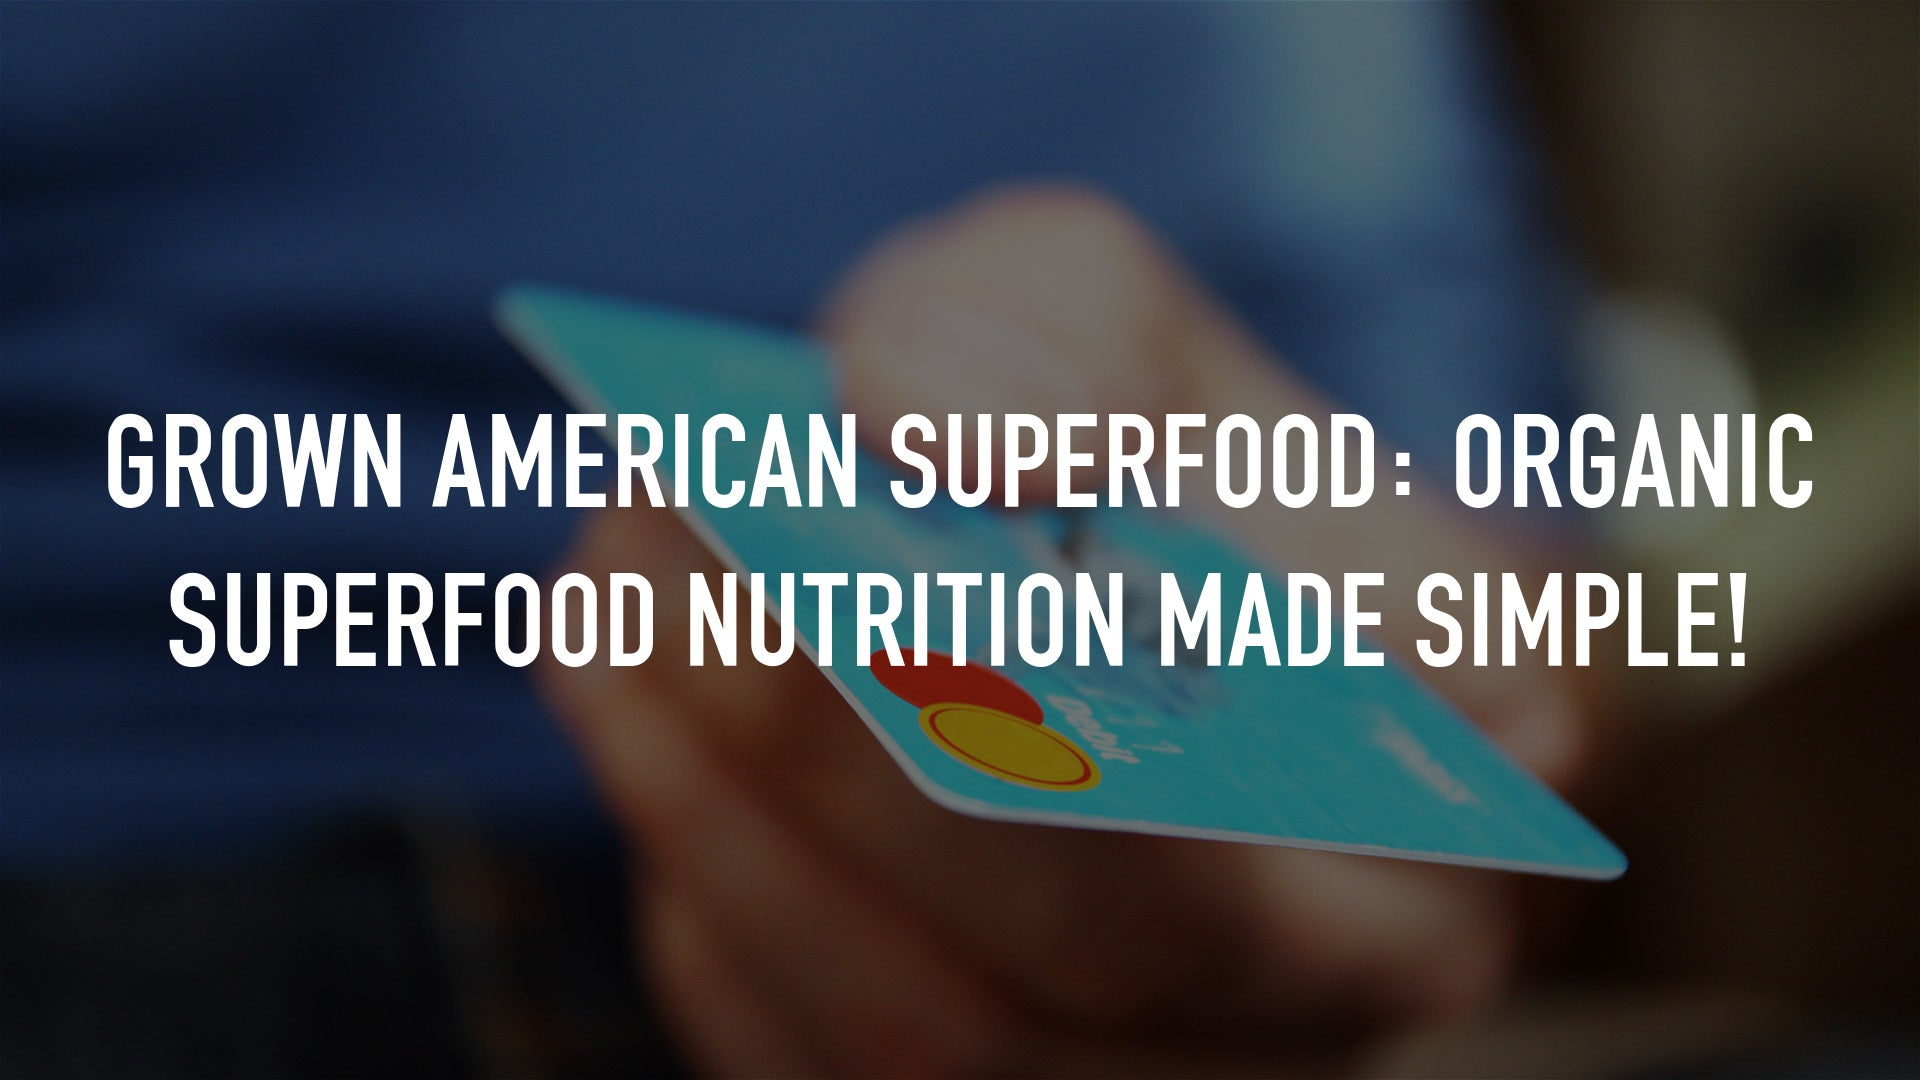 Grown American Superfood: Organic Superfood Nutrition Made Simple!